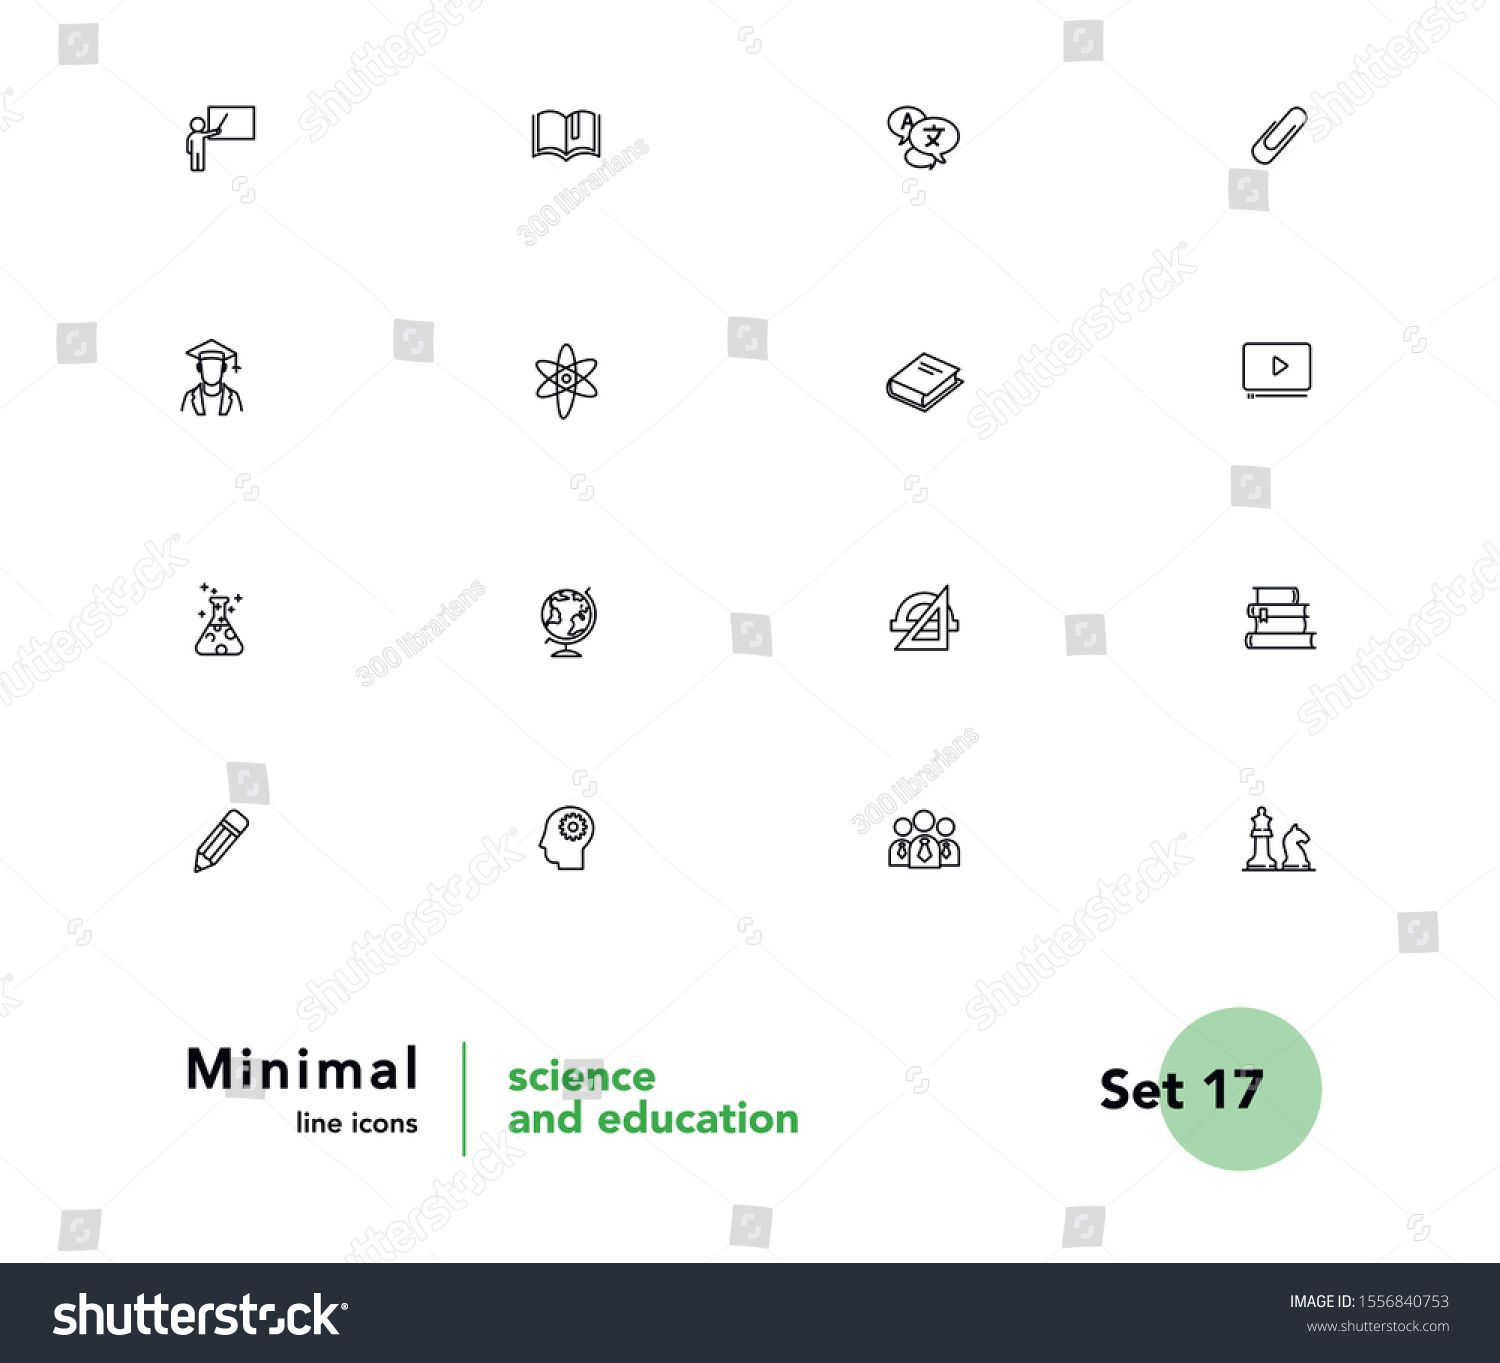 Science And Education Vector Linear Icons Set Elements Education